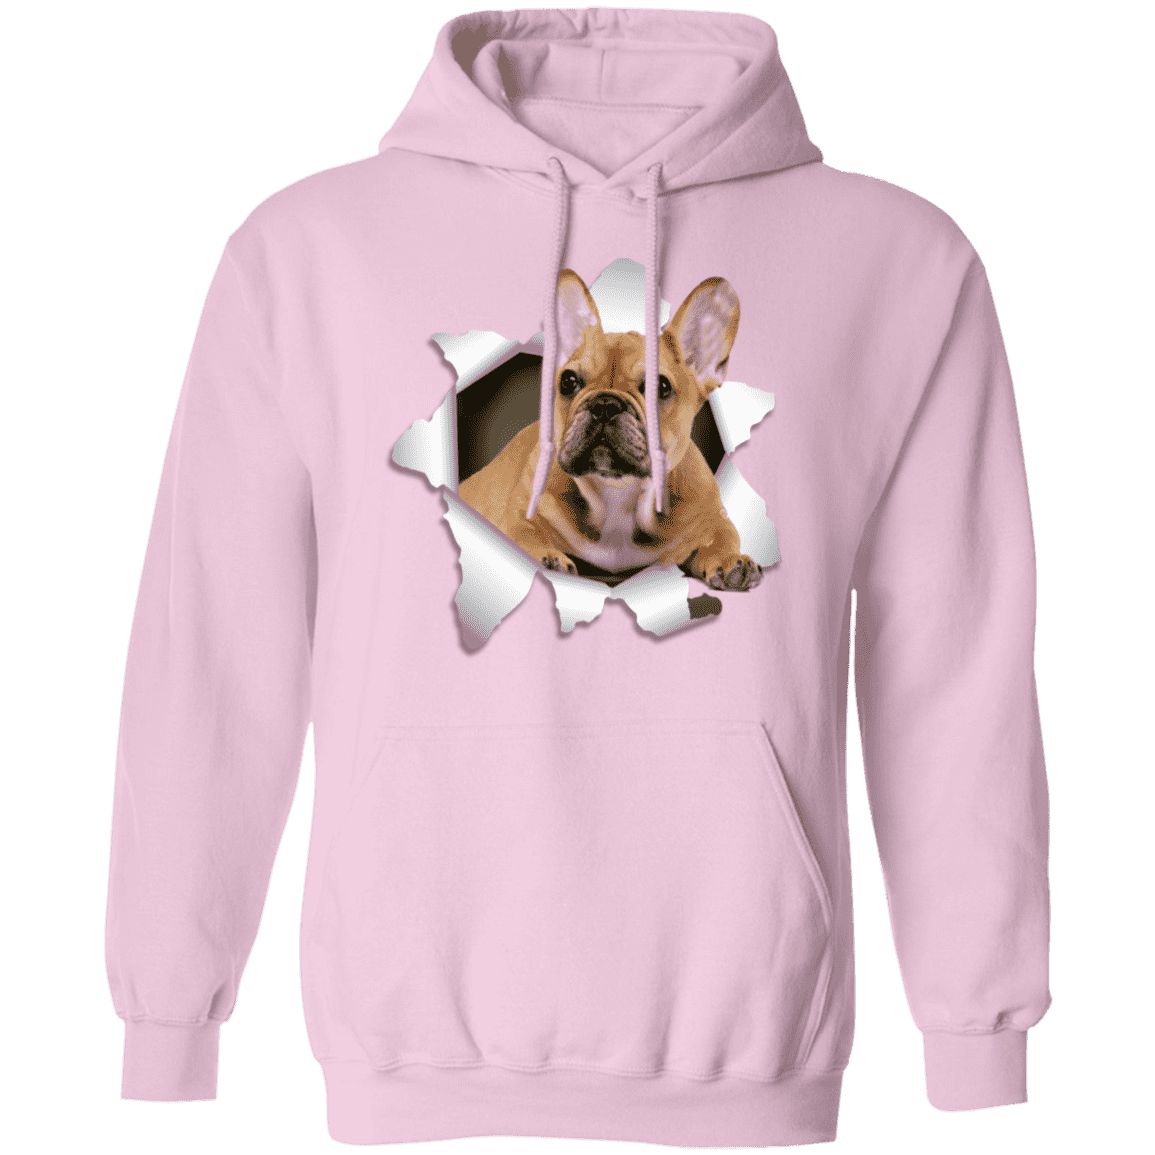 FRENCH BULLDOG 3D LADIES Pullover Hoodie 8 oz.